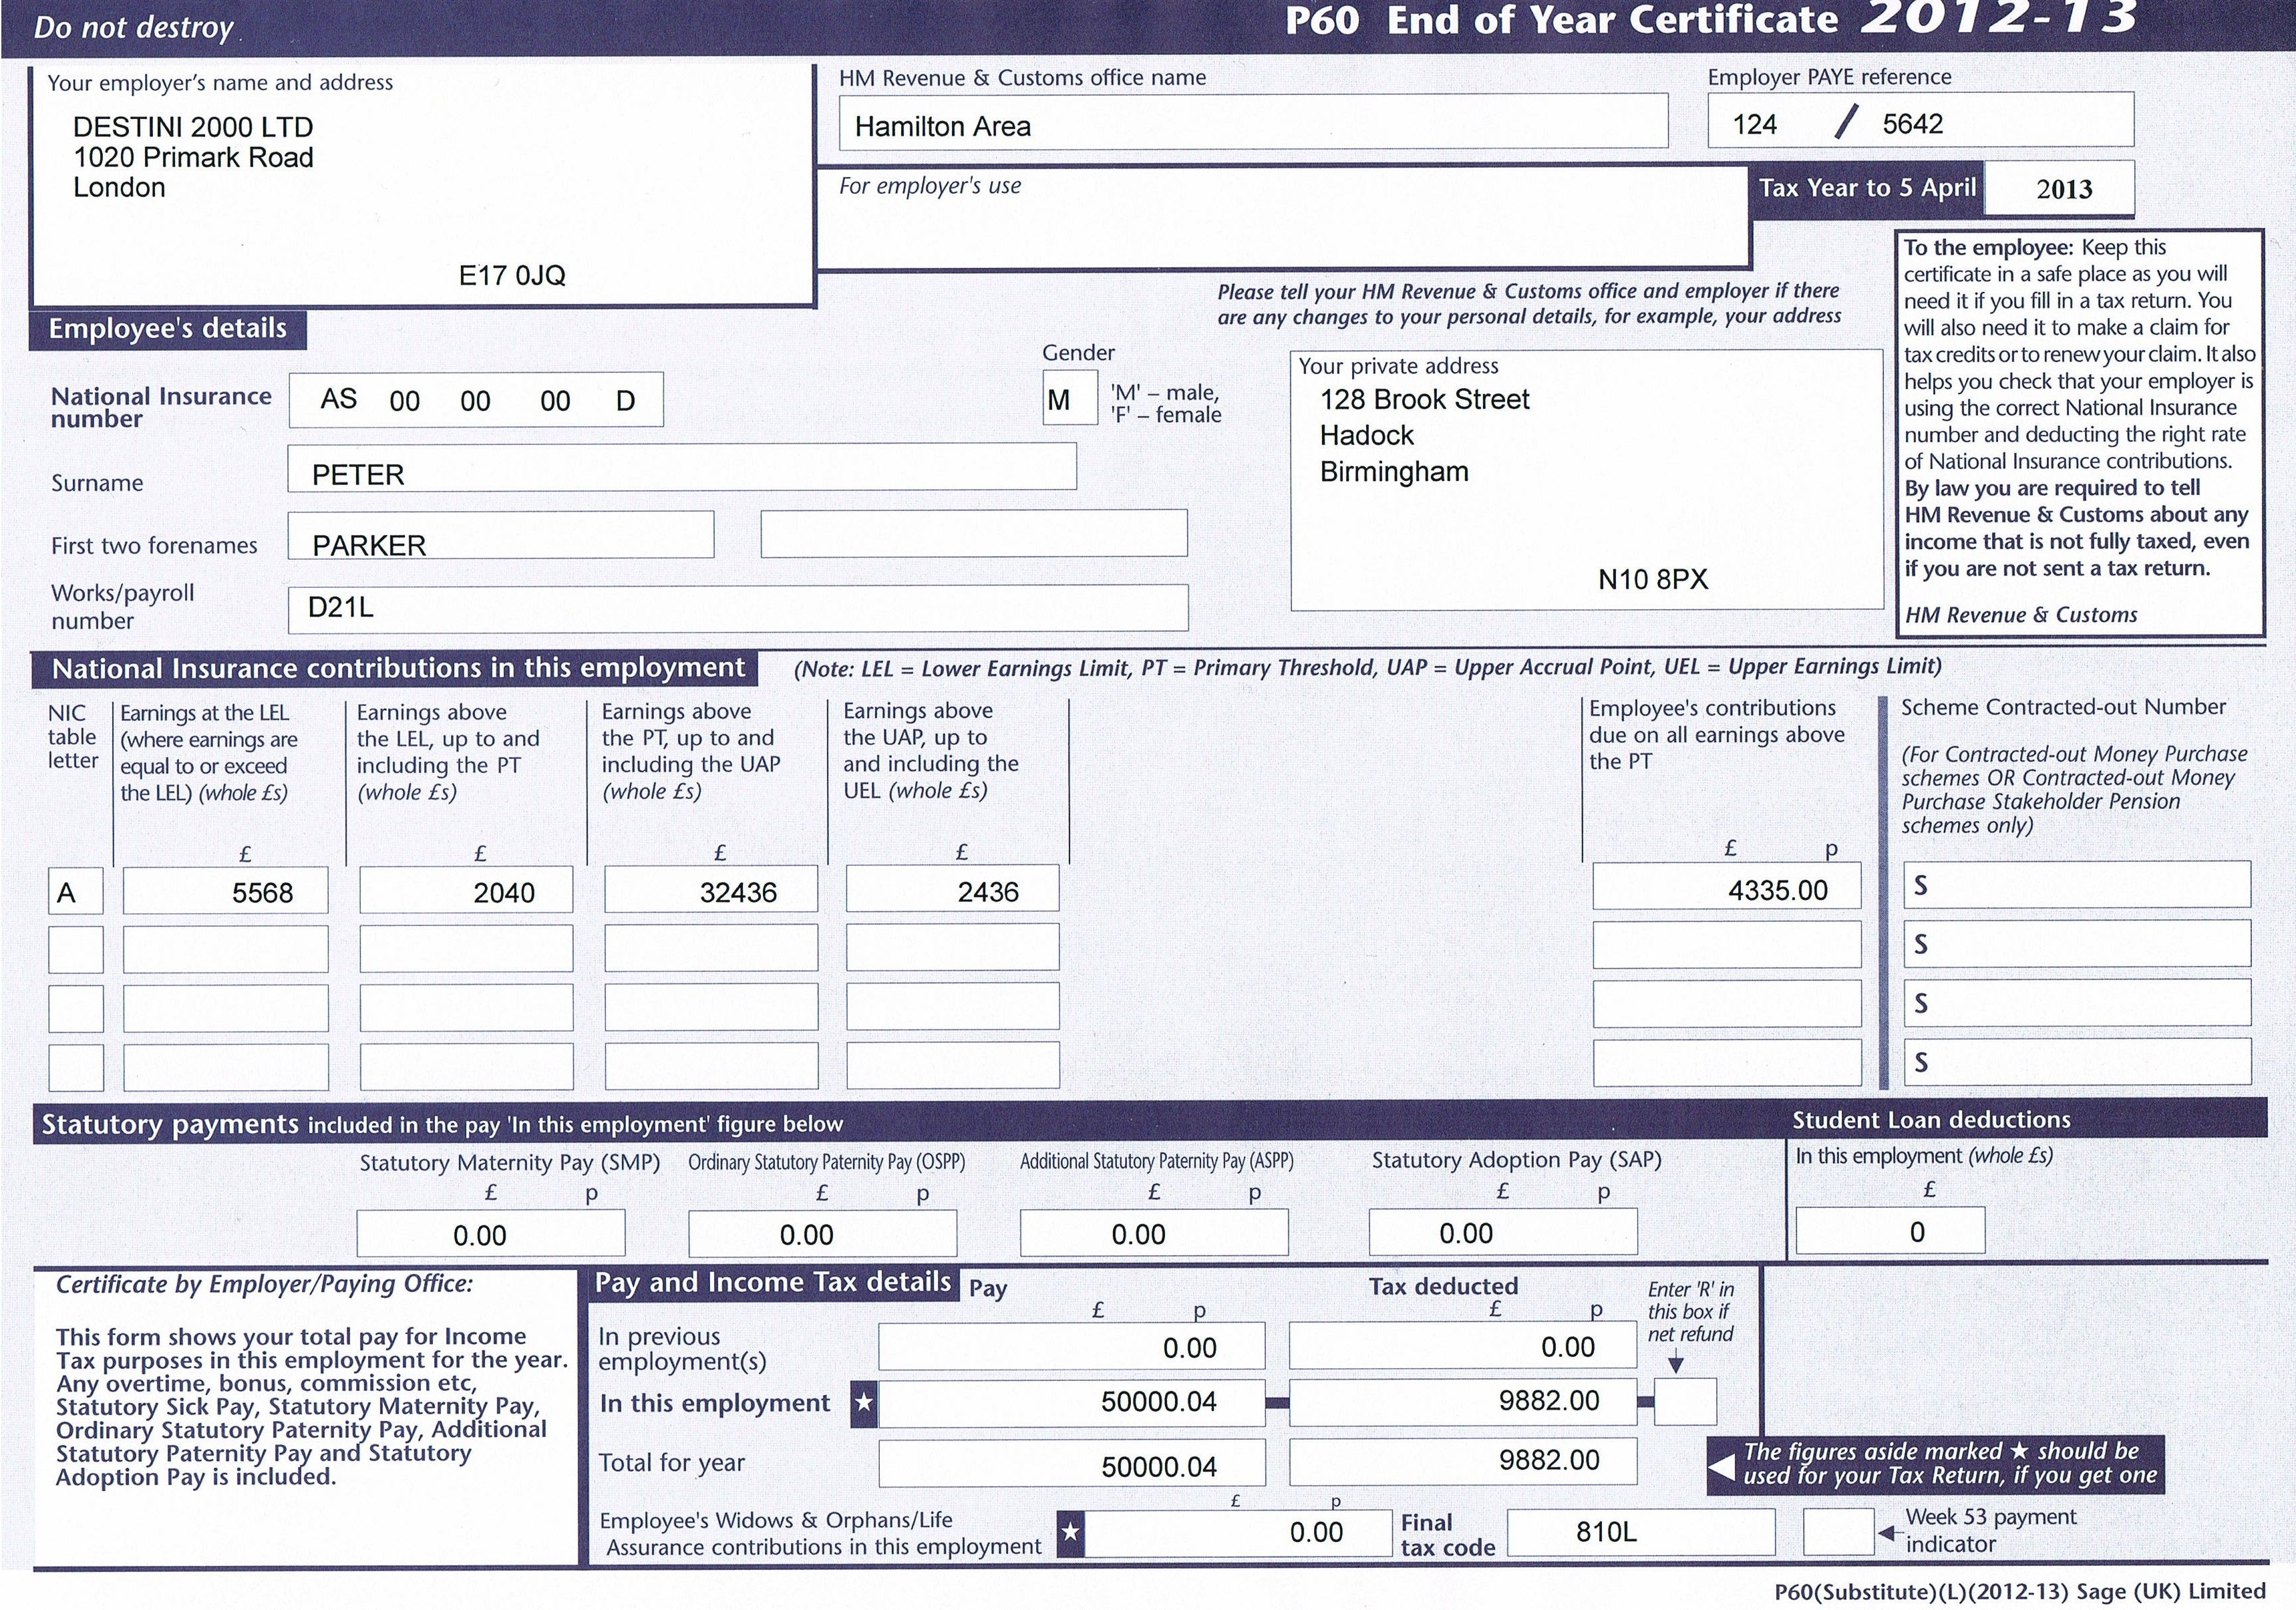 Buy Lost or Damage #Payslips Online at Lowest Price in UK